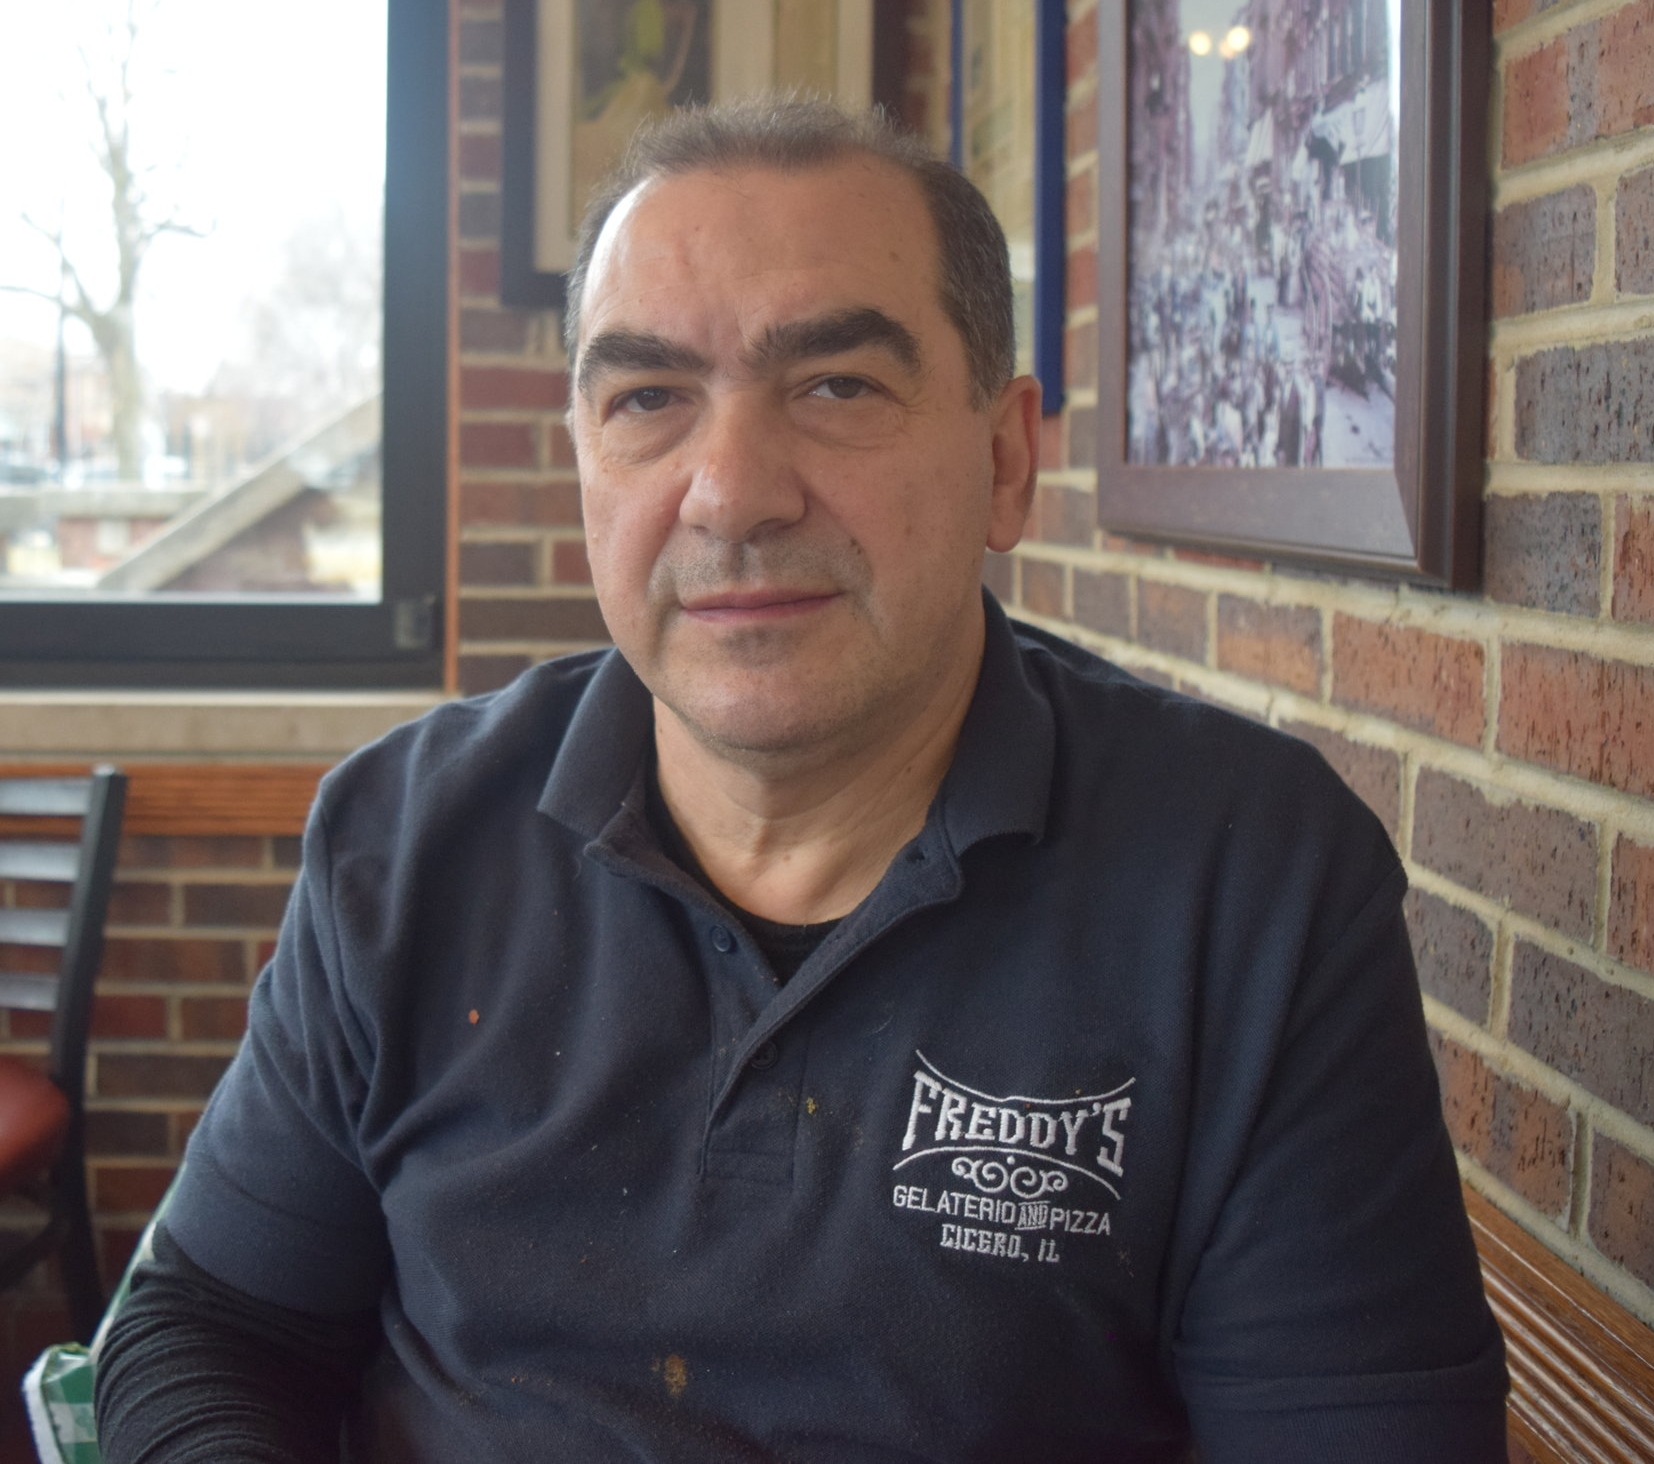 """Giuseppe Quercia   Owner, Freddy's Pizza   """"I started working here [the original location] in 1968. I came from Italy. I was 13 years old. I started cleaning, washing floors, pots and pans. From there, I graduated to make pizzas and make Italian ice. After I finished my senior year of high school, the place was up for sale, and I purchased it. That was the establishment here where we are now. And that was it. I made a lot of changes. We added on a deli, Italian lunch meat, Italian products. Before it was just a lot of things to survive – it was a 2-3 person operation. Now we have about 10 or 11 people working for us. This all started in 1973. I went back for my first trip back to Italy in 1978-1979, and I brought a lot of ideas that I see there like the trattoria style and the gelato. When we started, it was a little rocky road because people were not aware, but now gelato is very popular. I met my wife here too. We both took an adventure and got married in 1983. From that point on, we build on, build on, and build on and became a place to stop. Last week, there were some customers who stopped in who wanted to see me and talk to me, and I realized they were the 4th generation [of the family] I am taking care of. Next March, it's going to be 50 years I've been doing this. Some of these kids are coming here, well I call them kids, but their grandparents used to bring them here. Now they're bringing their kids, and some of their kids are getting married. For a little small place, you see very few places like this. New York you see a lot of them. But here, it seems like in Chicago everything is commercialized. Everything has to be big. These ma's and pa's are dying out. There's a love and a lot of dedication into this business. It's rewarding too at the end of the week. We were able to show people beyond meatballs, pasta, and spaghetti, there's more other Italian foods. It's a beautiful atmosphere when you come and see all these people that you know – such a great feeli"""